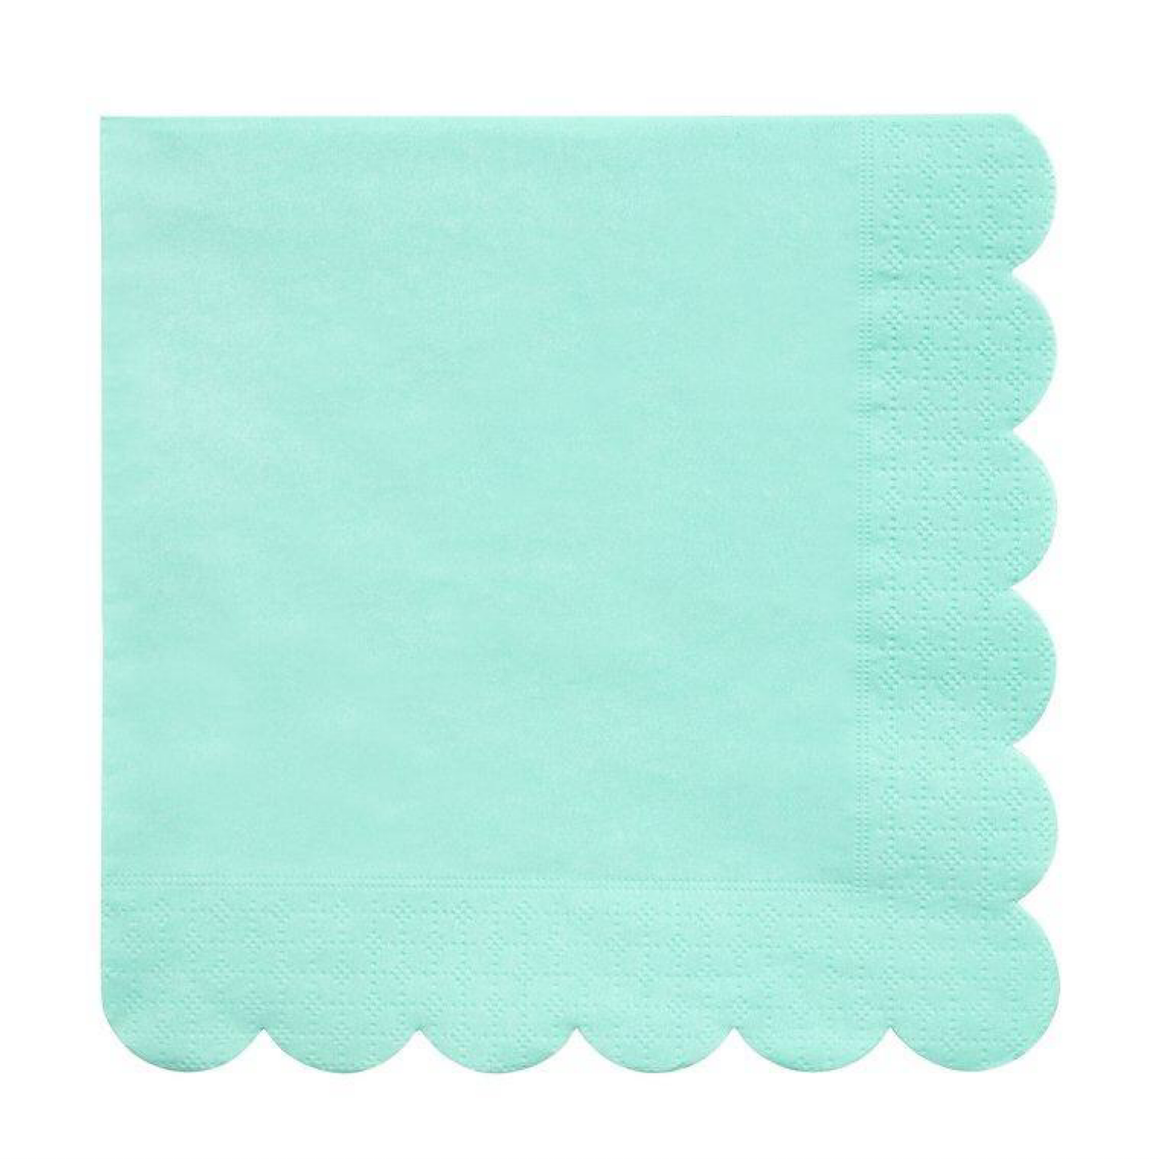 NAPKINS - LARGE MINT MERI MERI